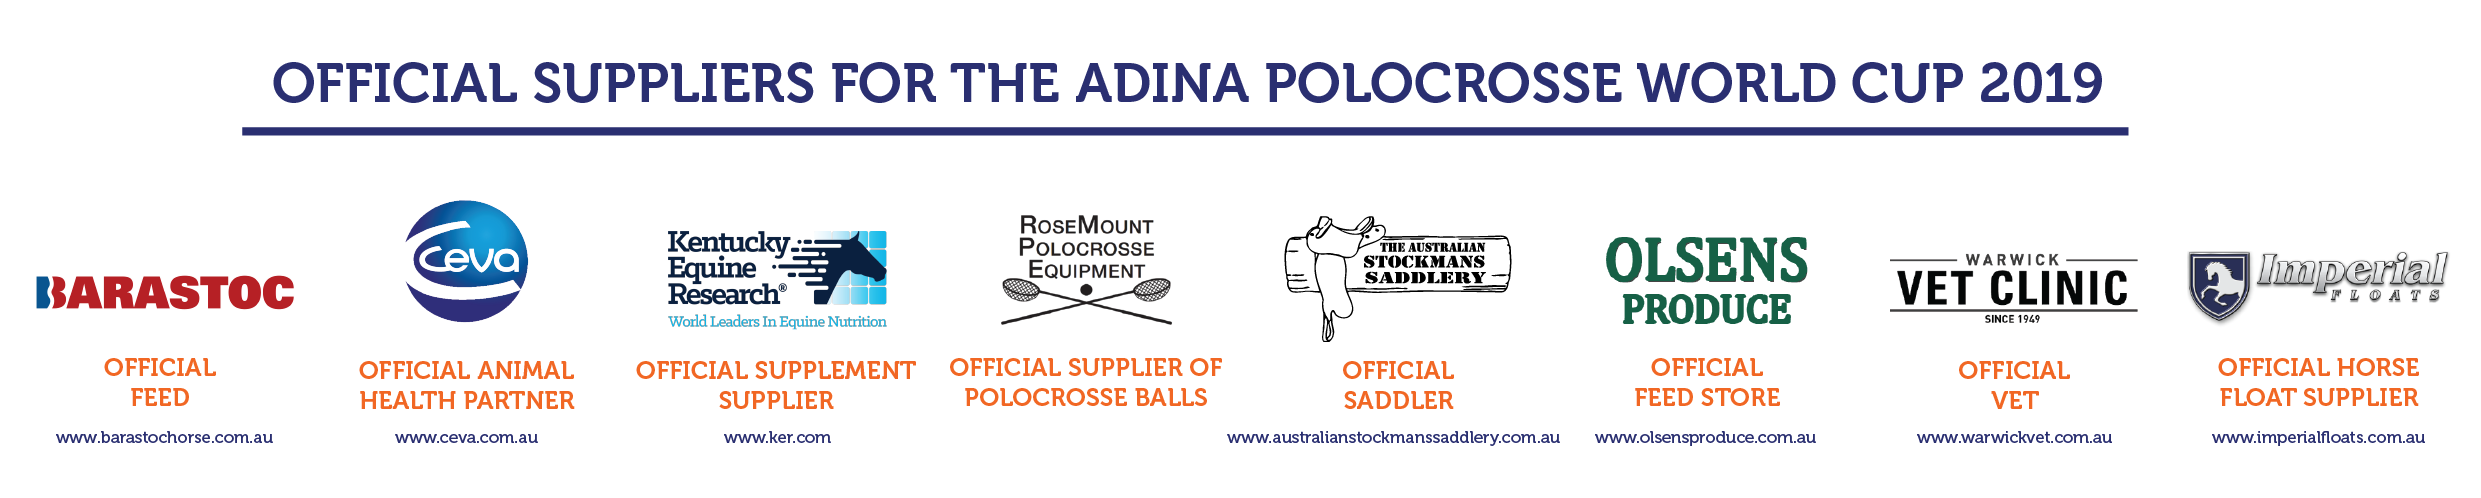 Polocrosse World Cup Suppliers.png